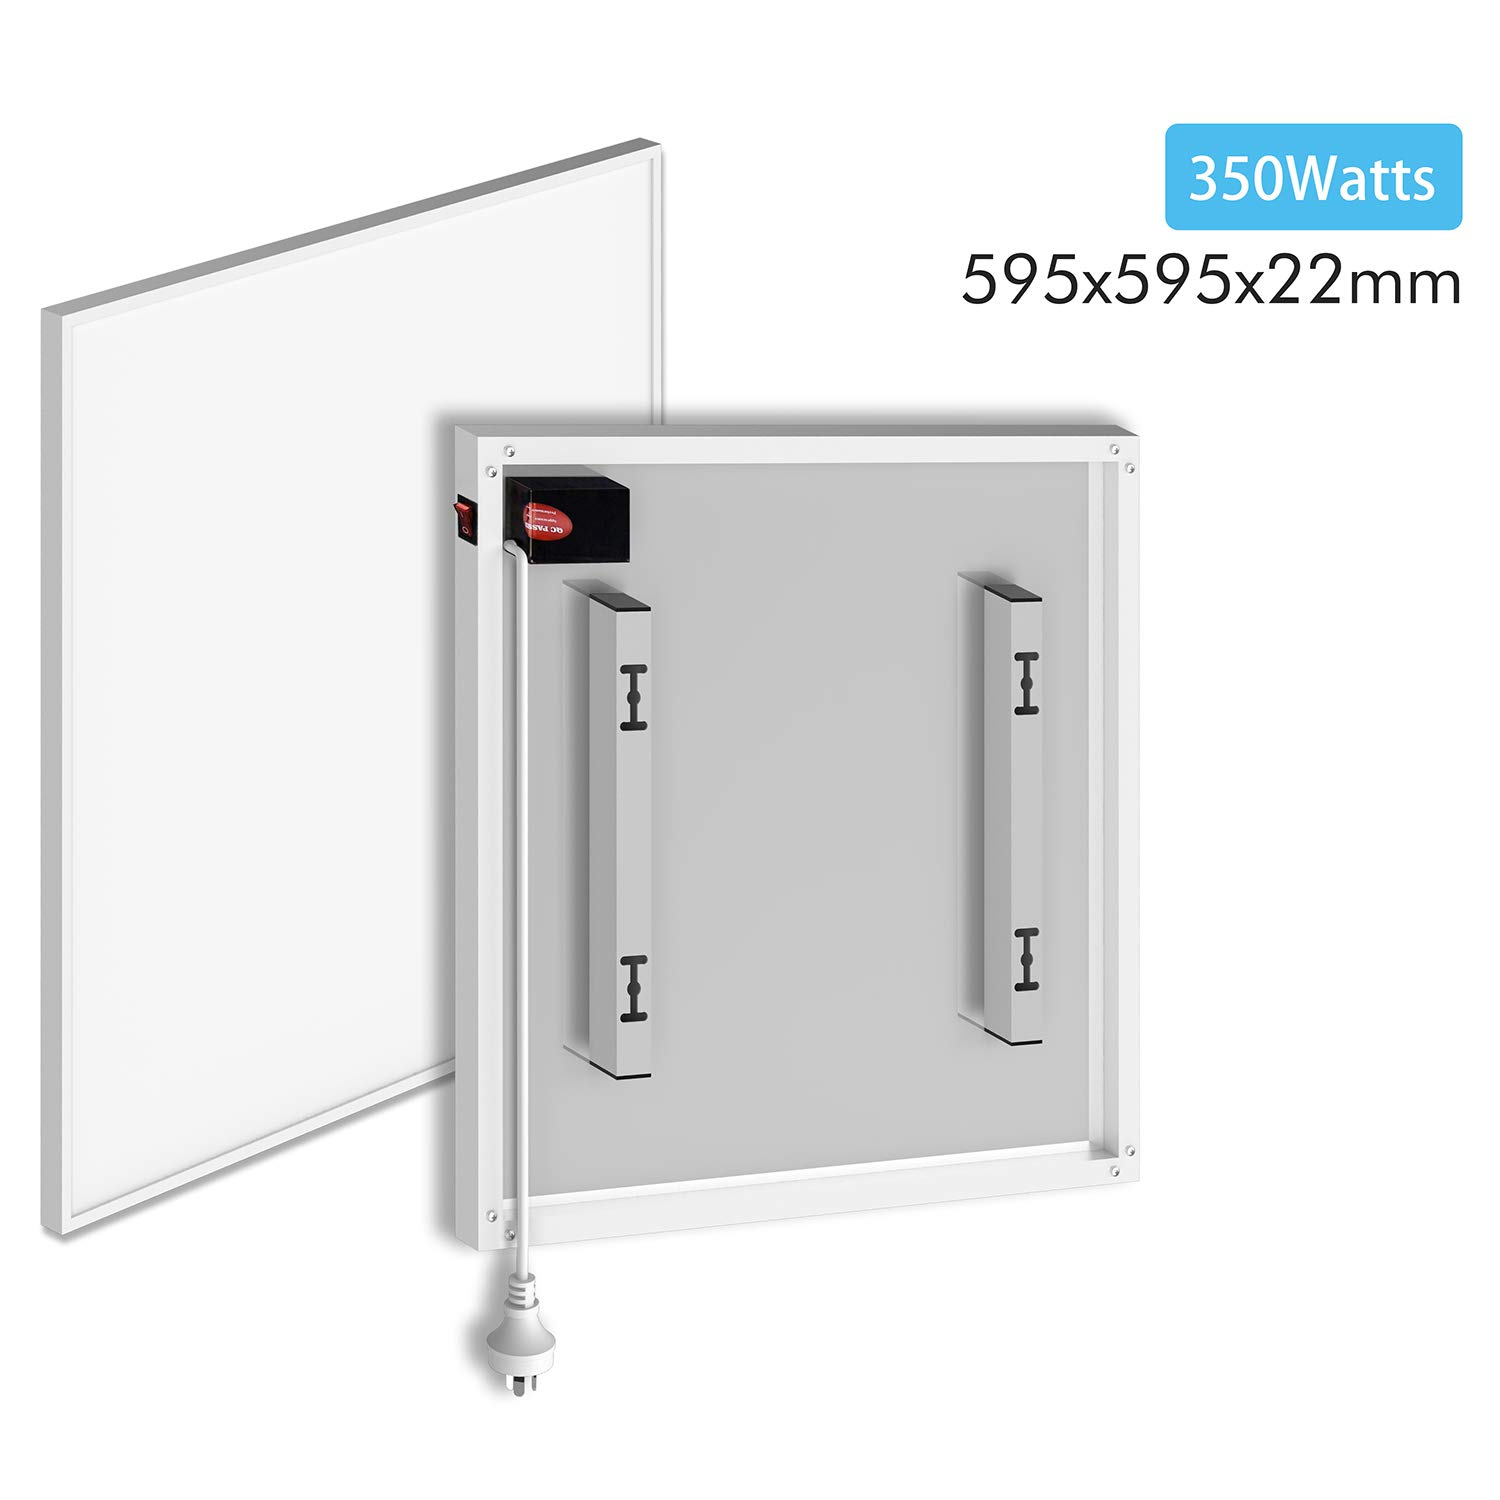 ELEGANT Slim panel heater only 22 mm thick-with CE//RoHS//Certificate electric low energy heater wall mounted- IP54 Rated for Safety Use 350W Energy Efficient Far Infrared Panel Heater